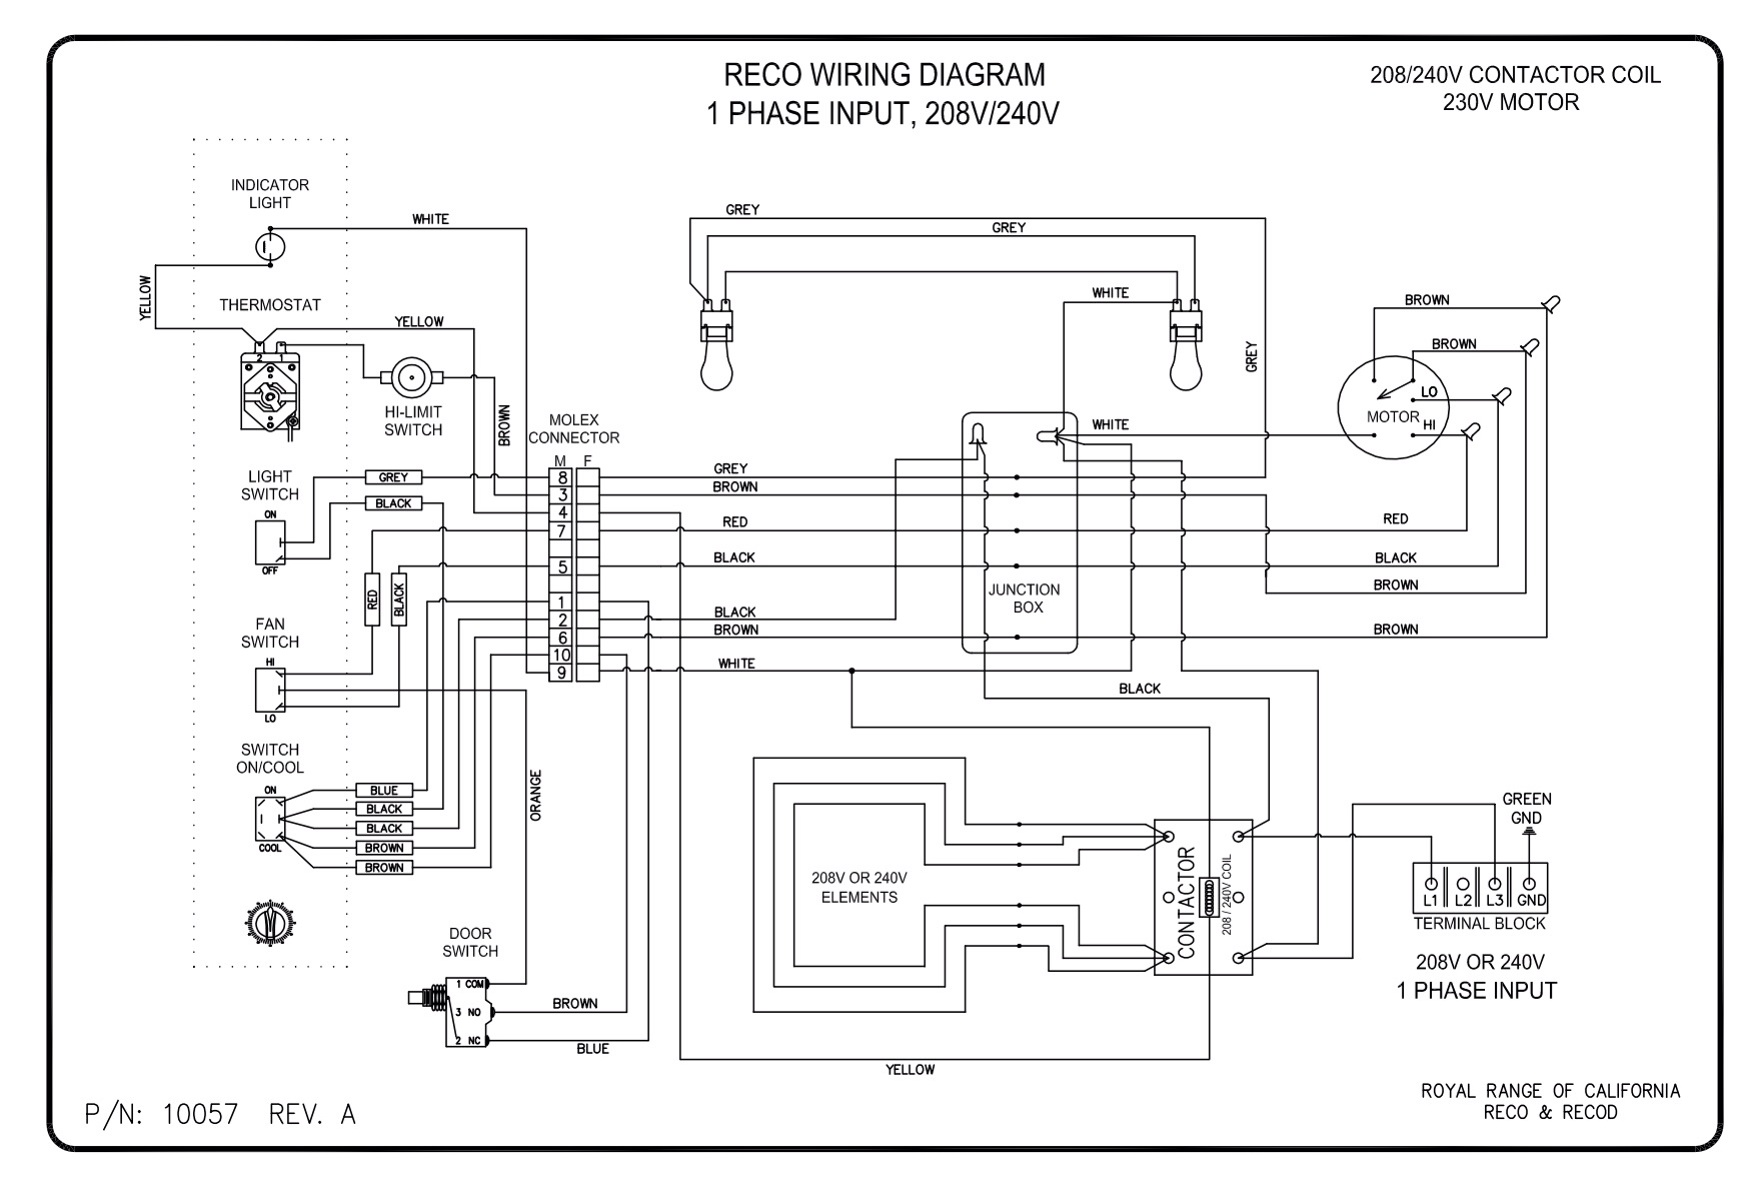 wiring diagrams royal range of california rh royalranges com montague convection oven wiring diagram blodgett convection oven wiring diagram